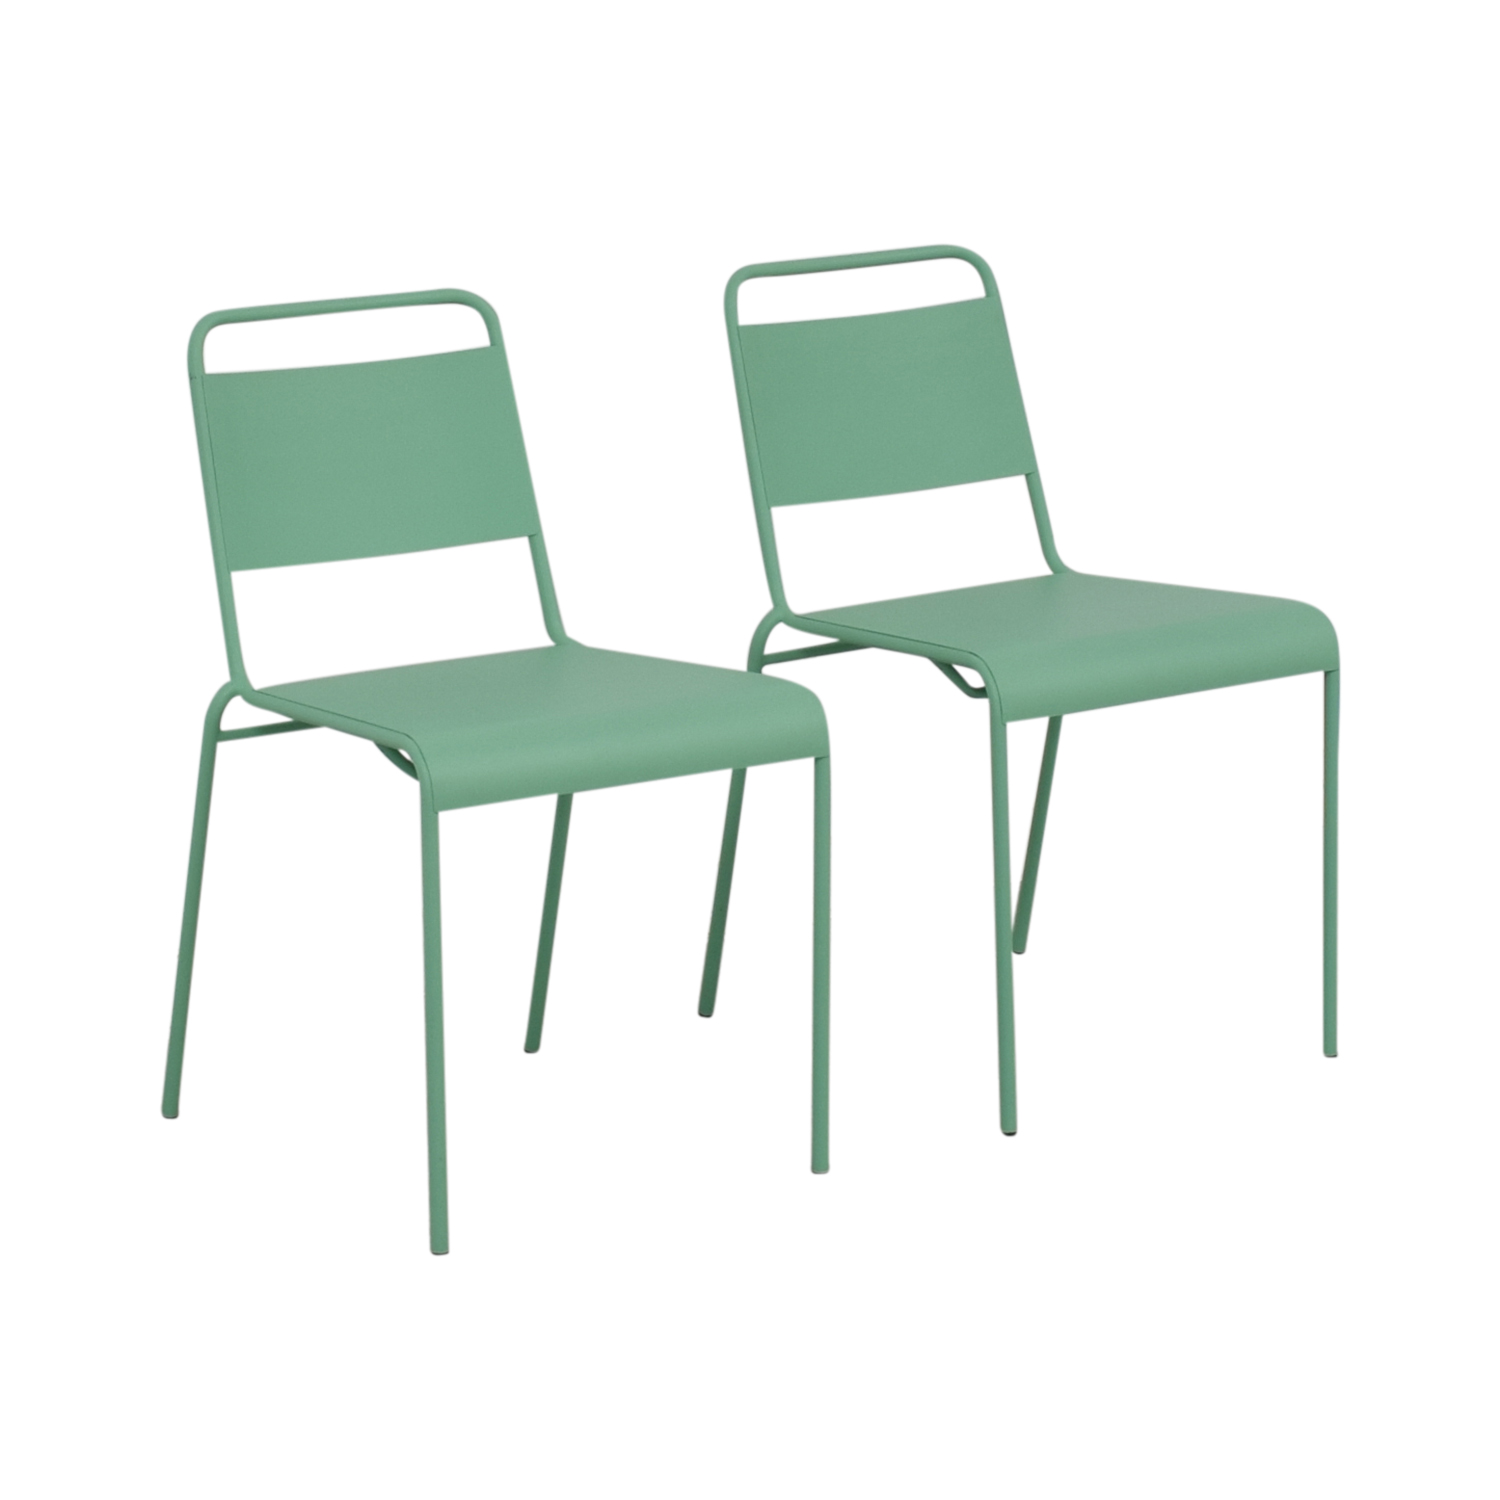 buy West Elm Lucinda Mint Green Dining Chairs West Elm Chairs